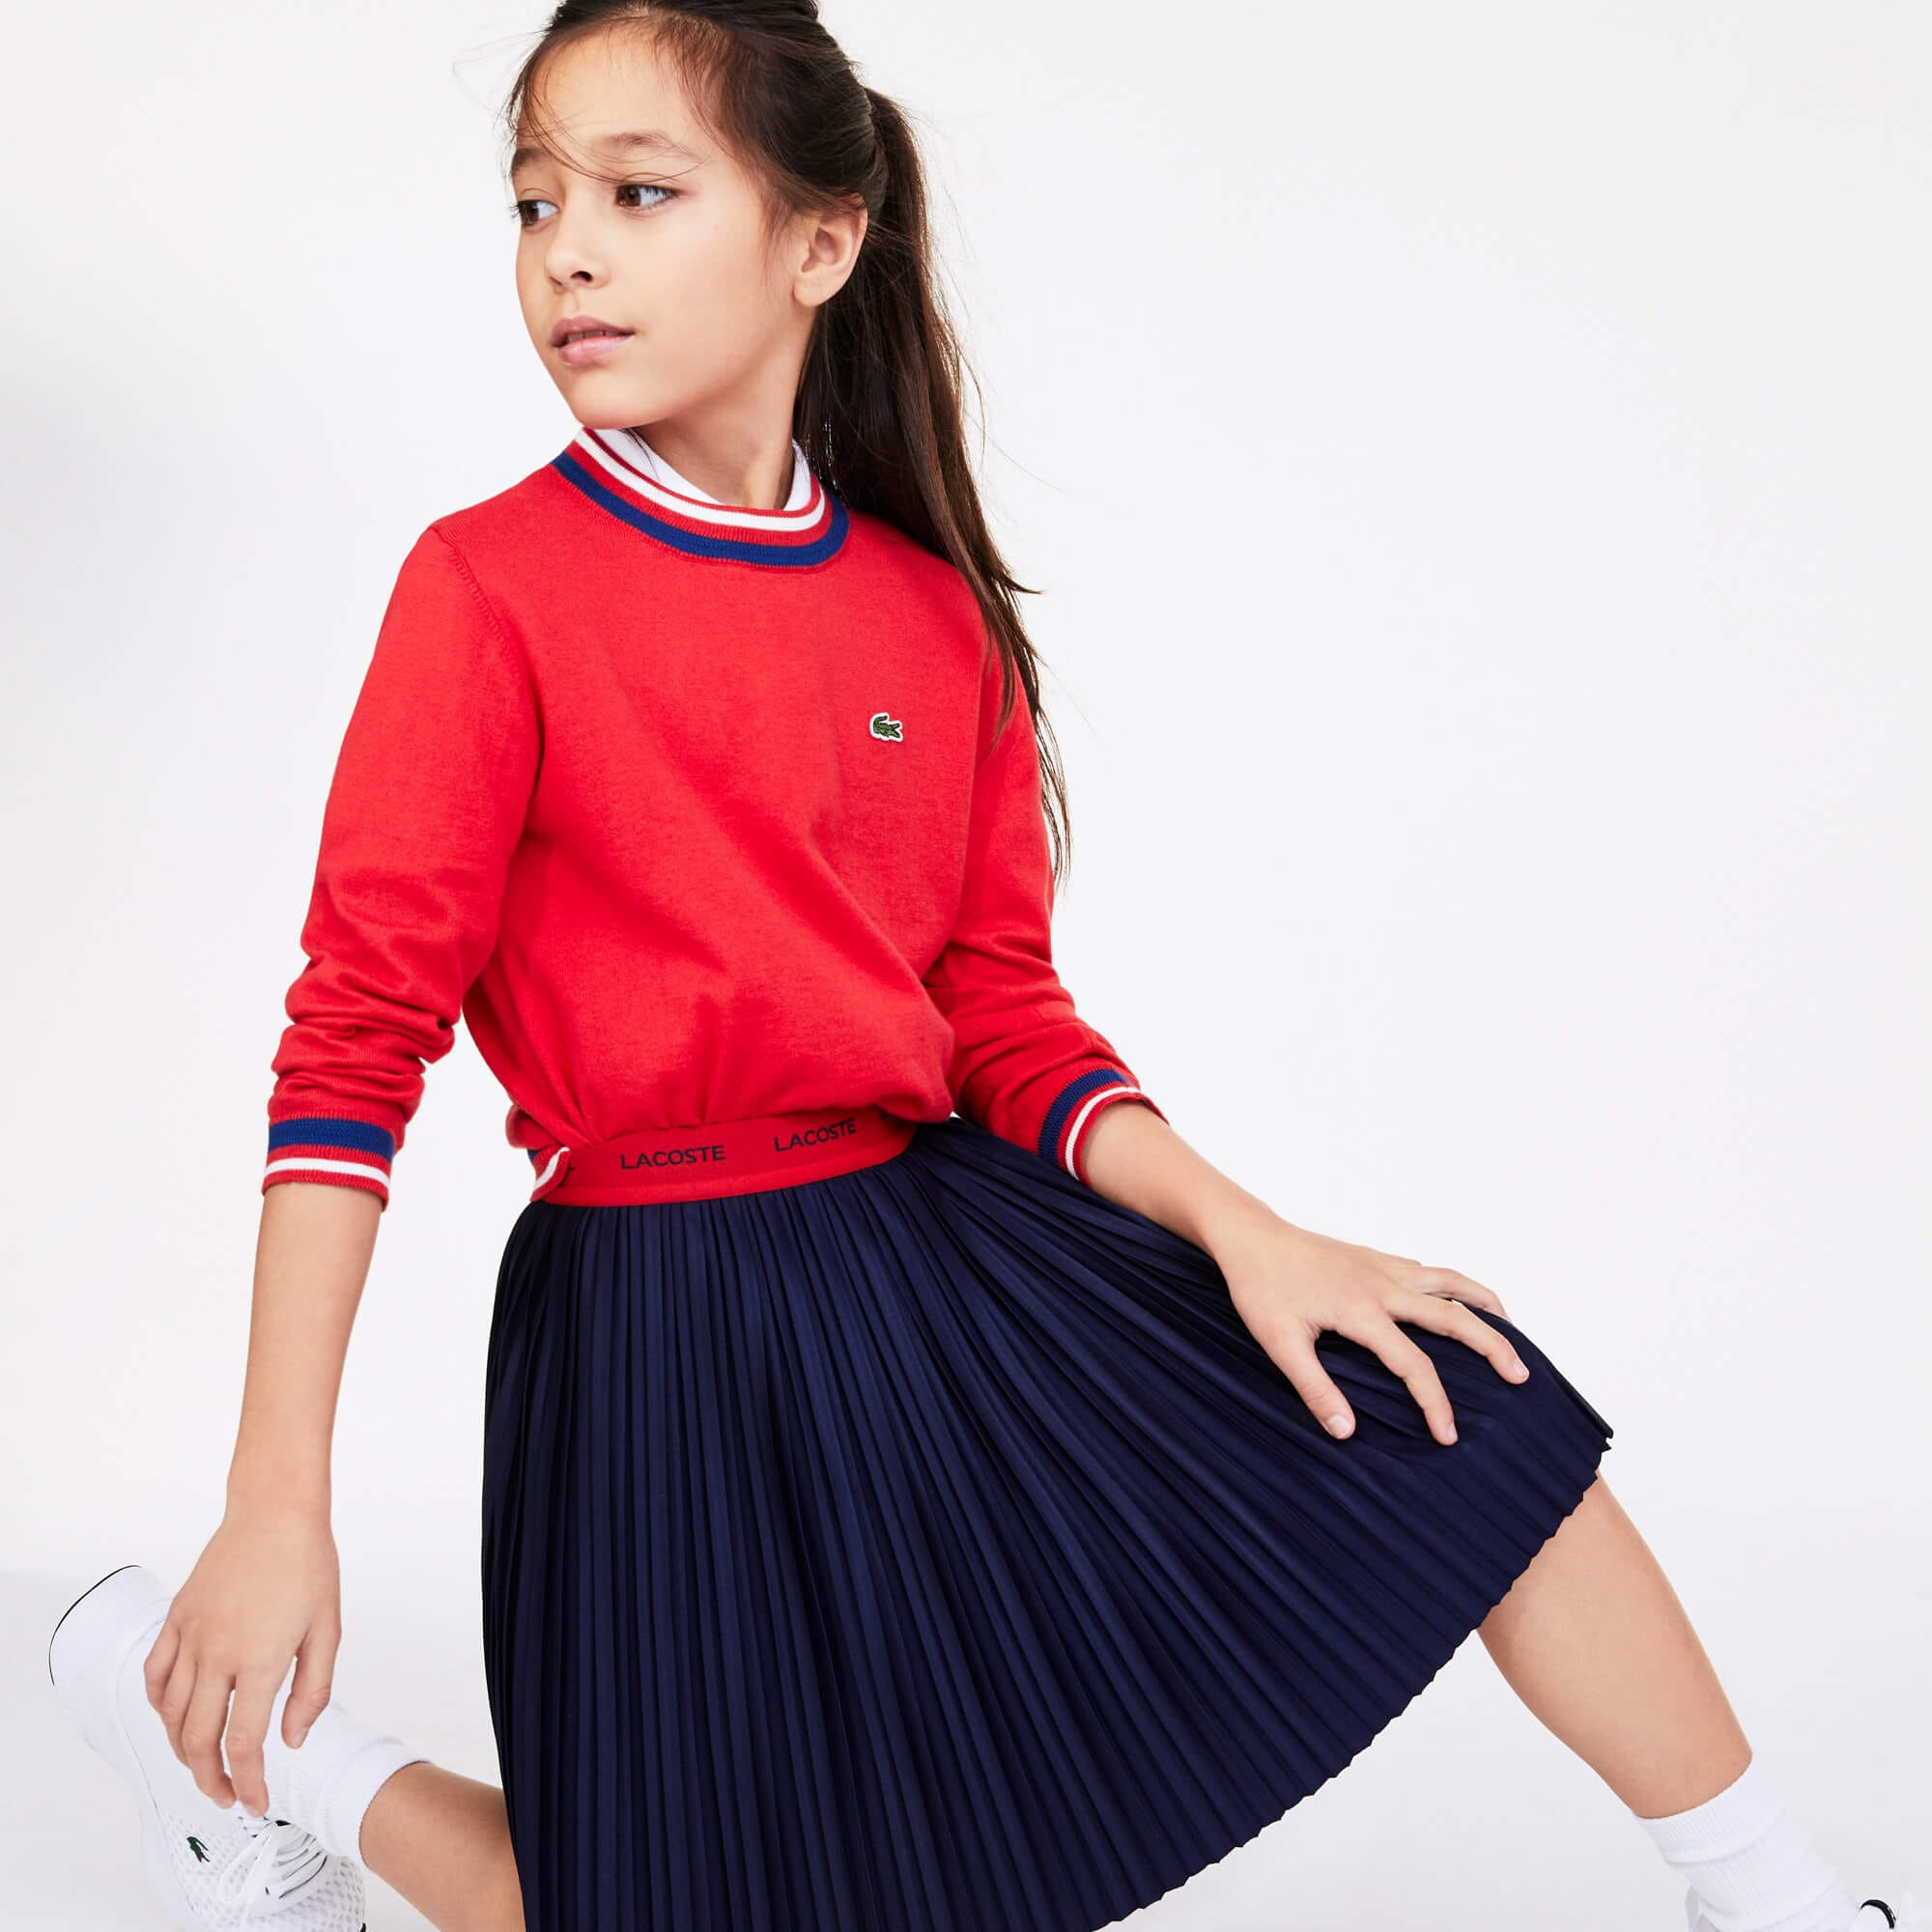 라코스테 Lacoste Girls Contrast Waistband Pleated Knit Skirt,Navy Blue / Red • 551